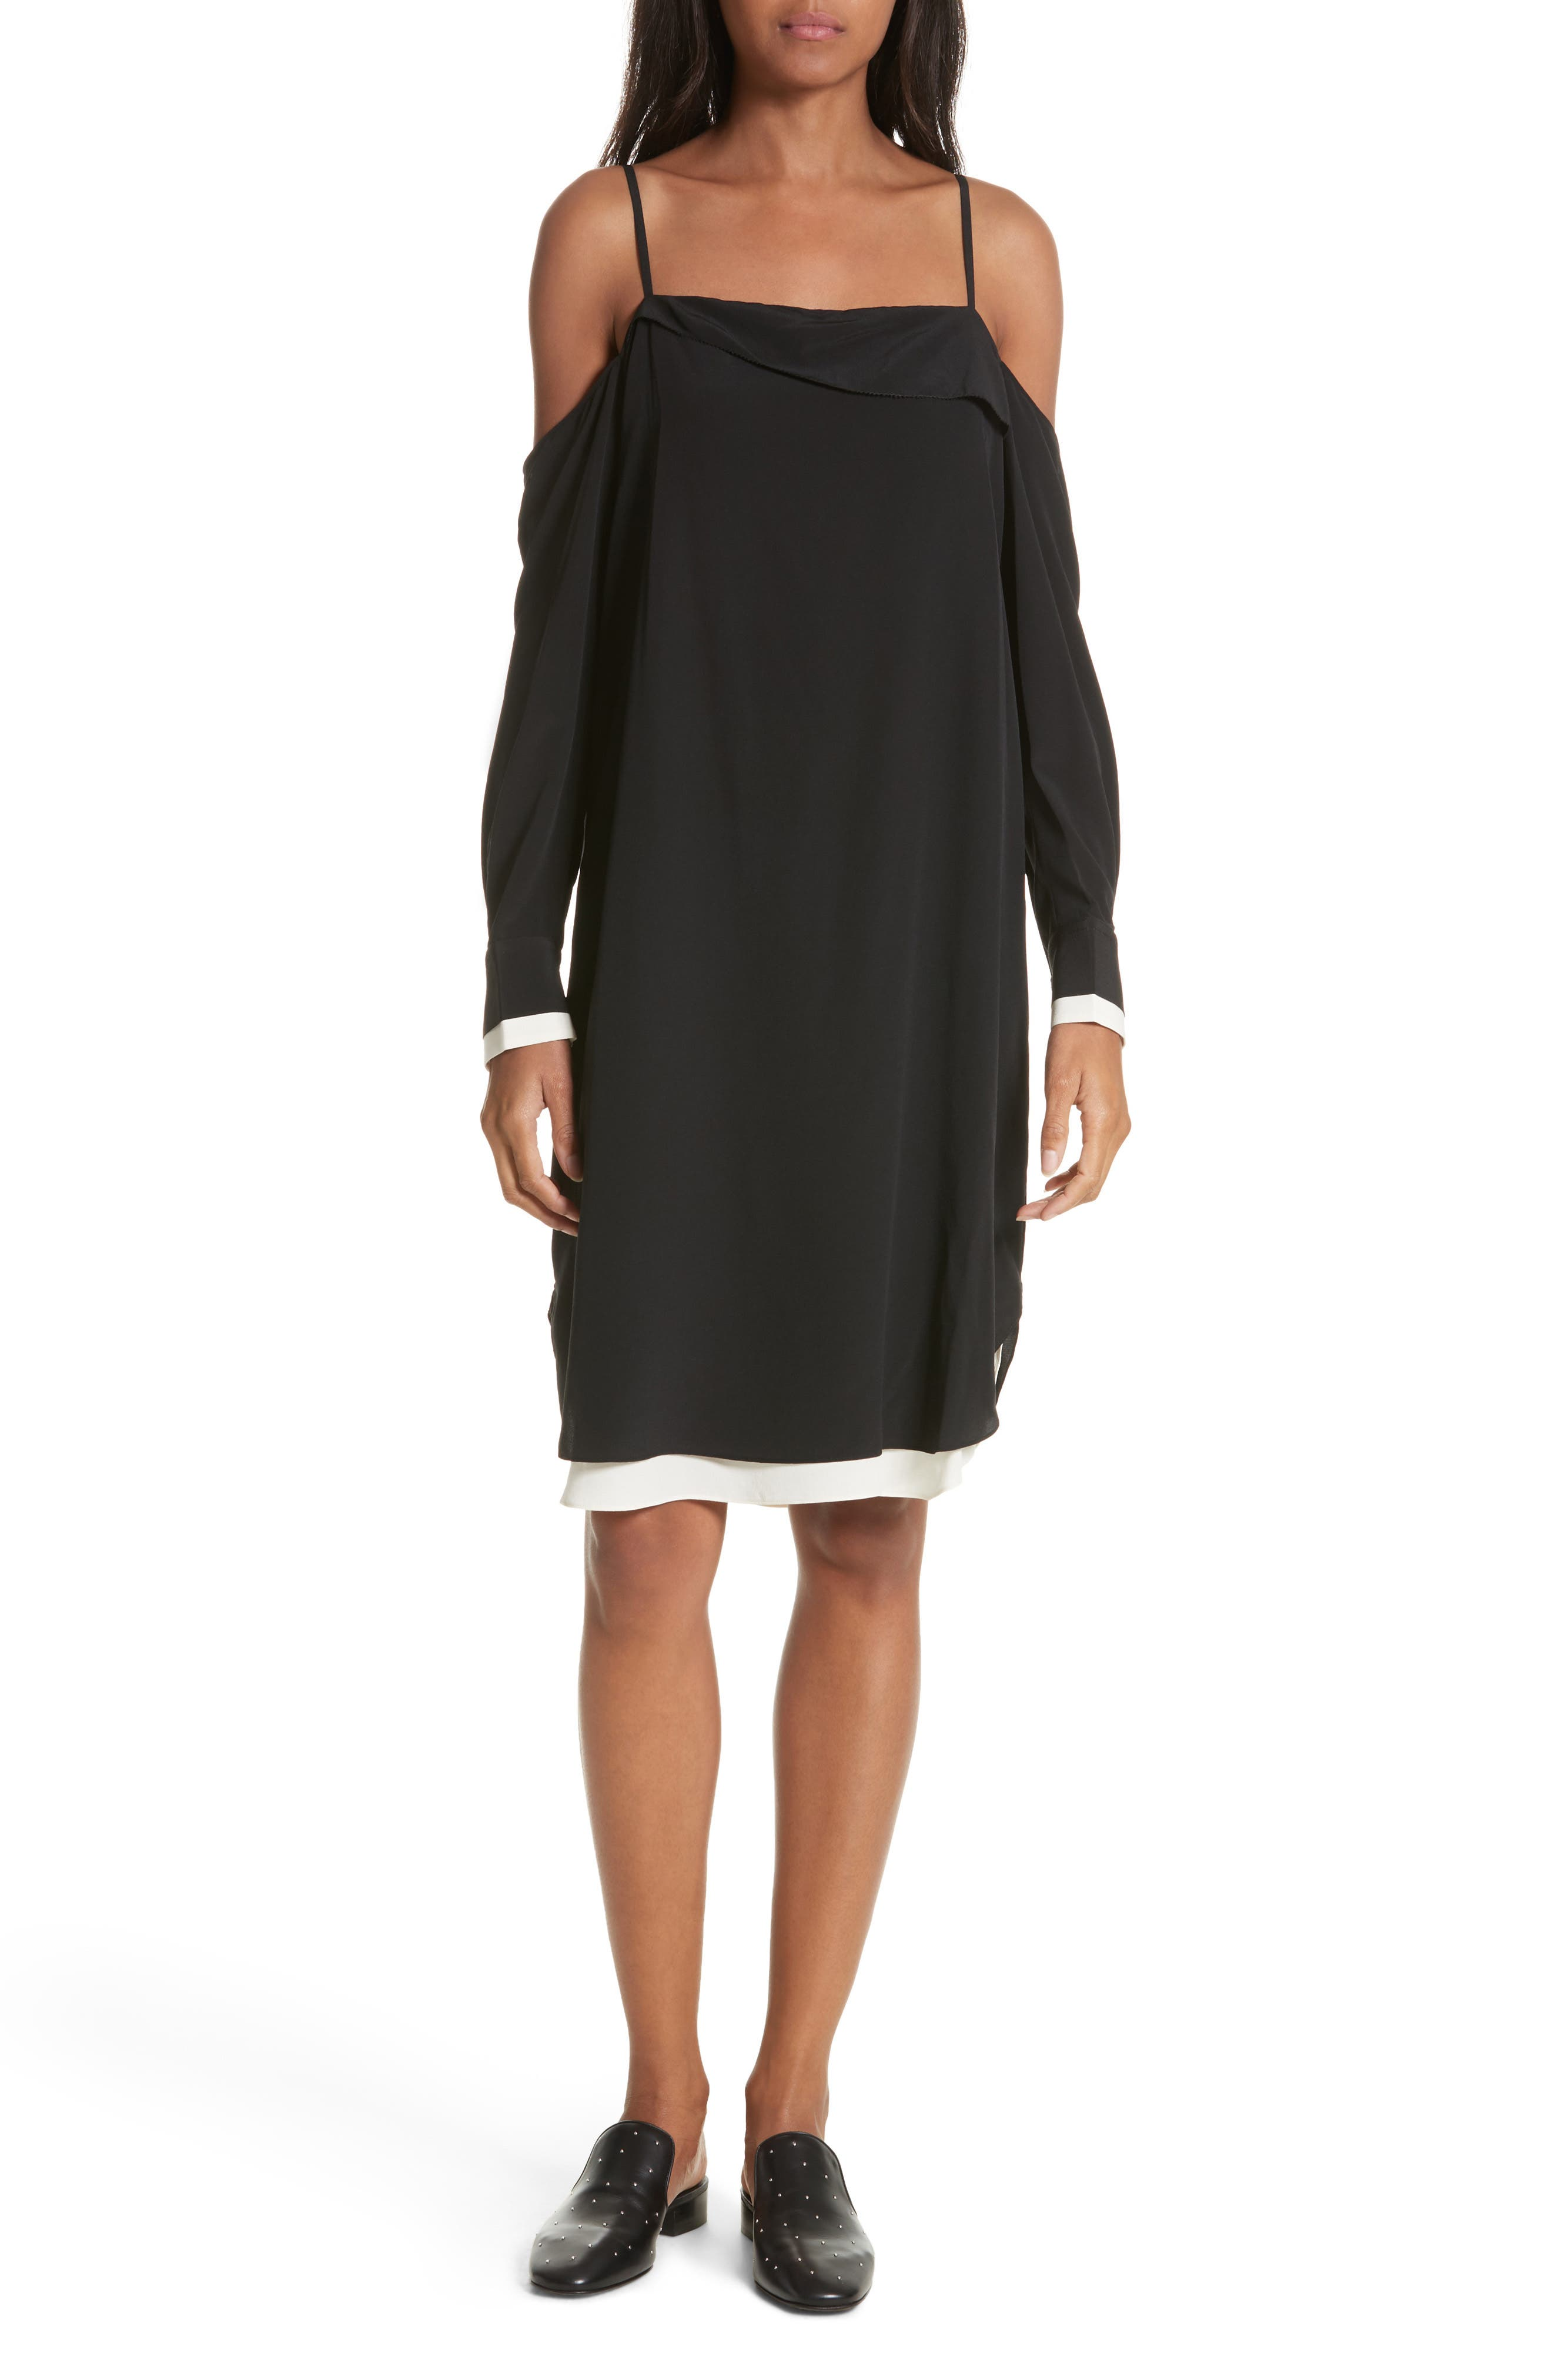 Karley Silk Dress,                         Main,                         color, Black